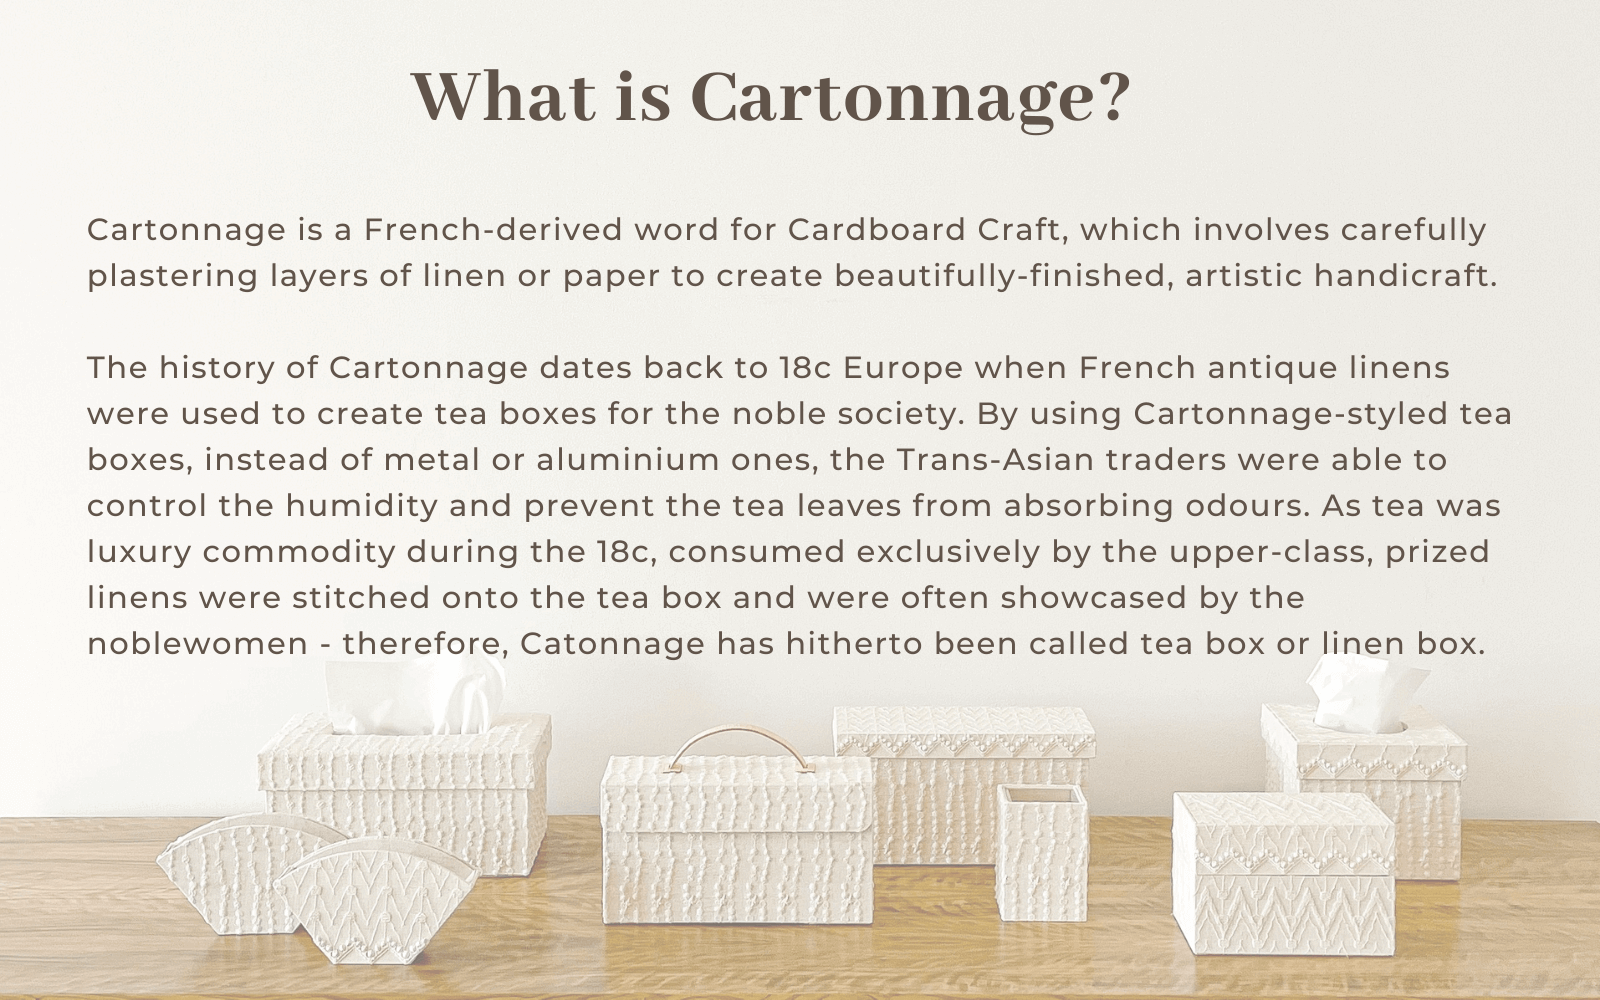 what is cartonnage?